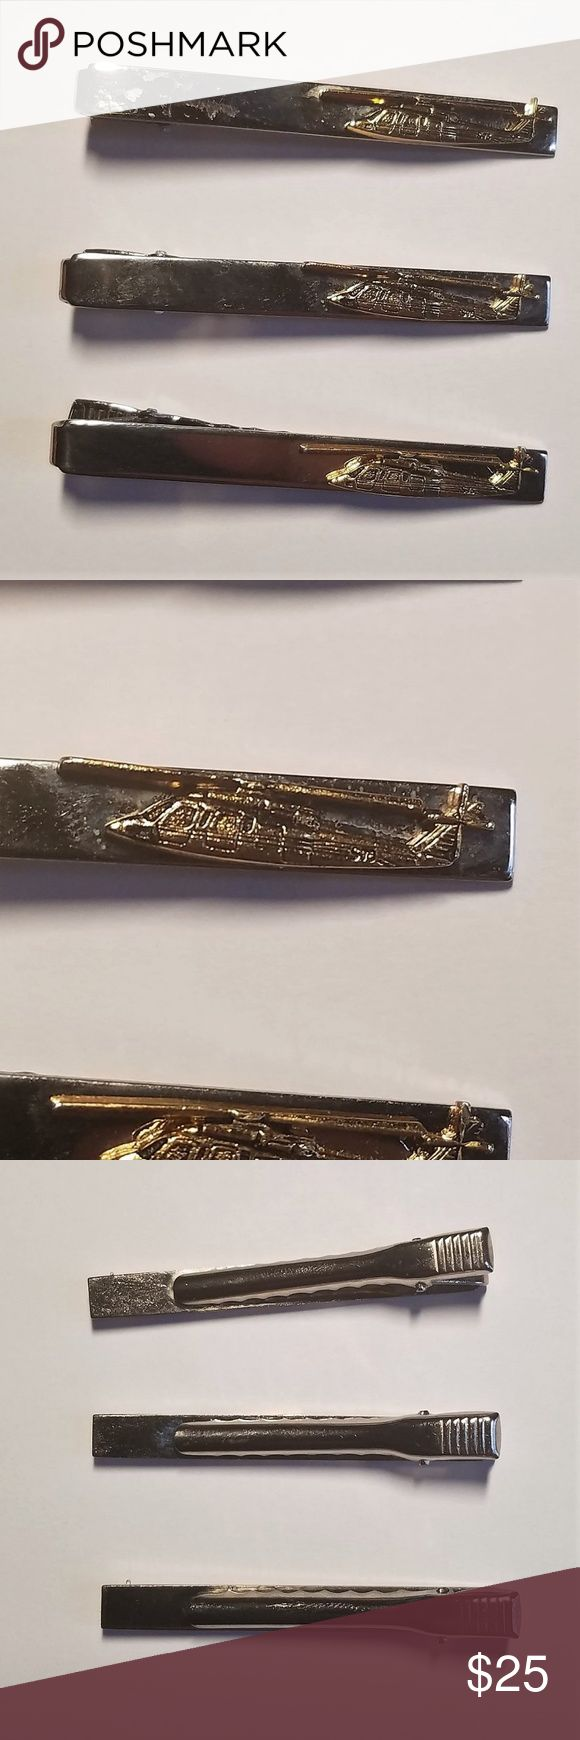 """Sikorsky Aircraft S76 Helicopter Tie Clip Lot of 3 Sikorsky Aircraft S-76 Military Helicopter Tie Clip Vintage - Lot of 3 *Excellent condition showing minimal wear. *The Sikorsky S-76 is an American medium-size commercial utility helicopter, manufactured by the Sikorsky Aircraft. The S-76 features twin turboshaft engines, four-bladed main and tail rotors and retractable landing gear. *Tie clip is in excellent condition showing minimal wear. *Length: 2 1/4 """" *Please examine all pictures in…"""